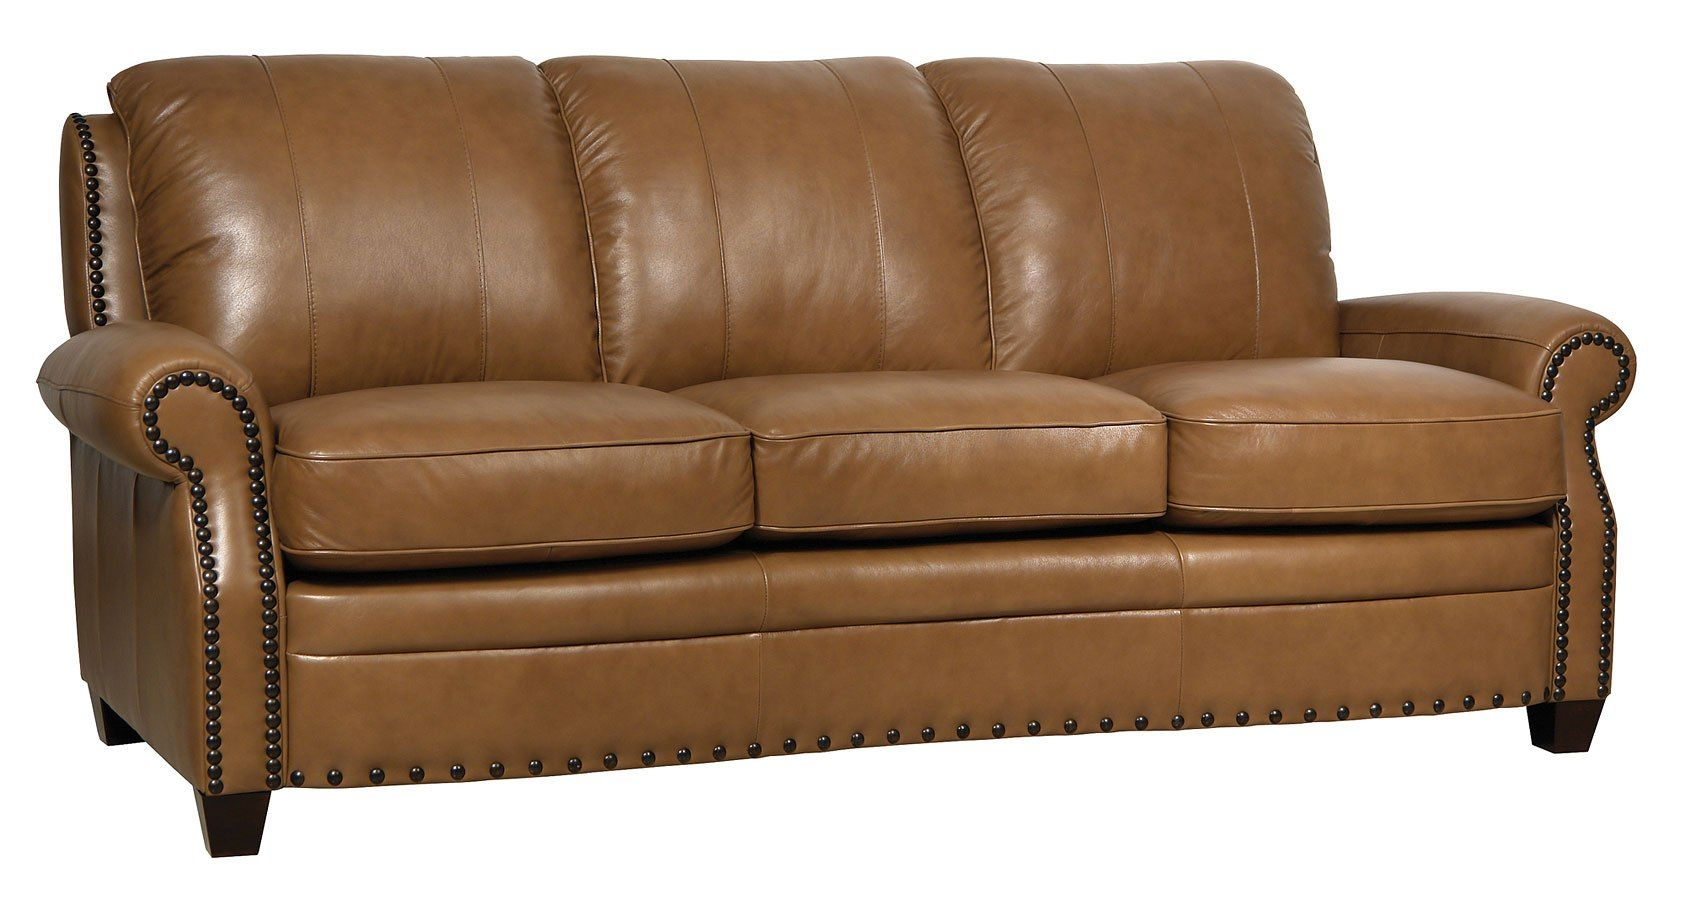 114 Reference Of Leather Sofa Brands Italian In 2020 Cognac Leather Sofa Leather Sofa Sale Italian Leather Furniture